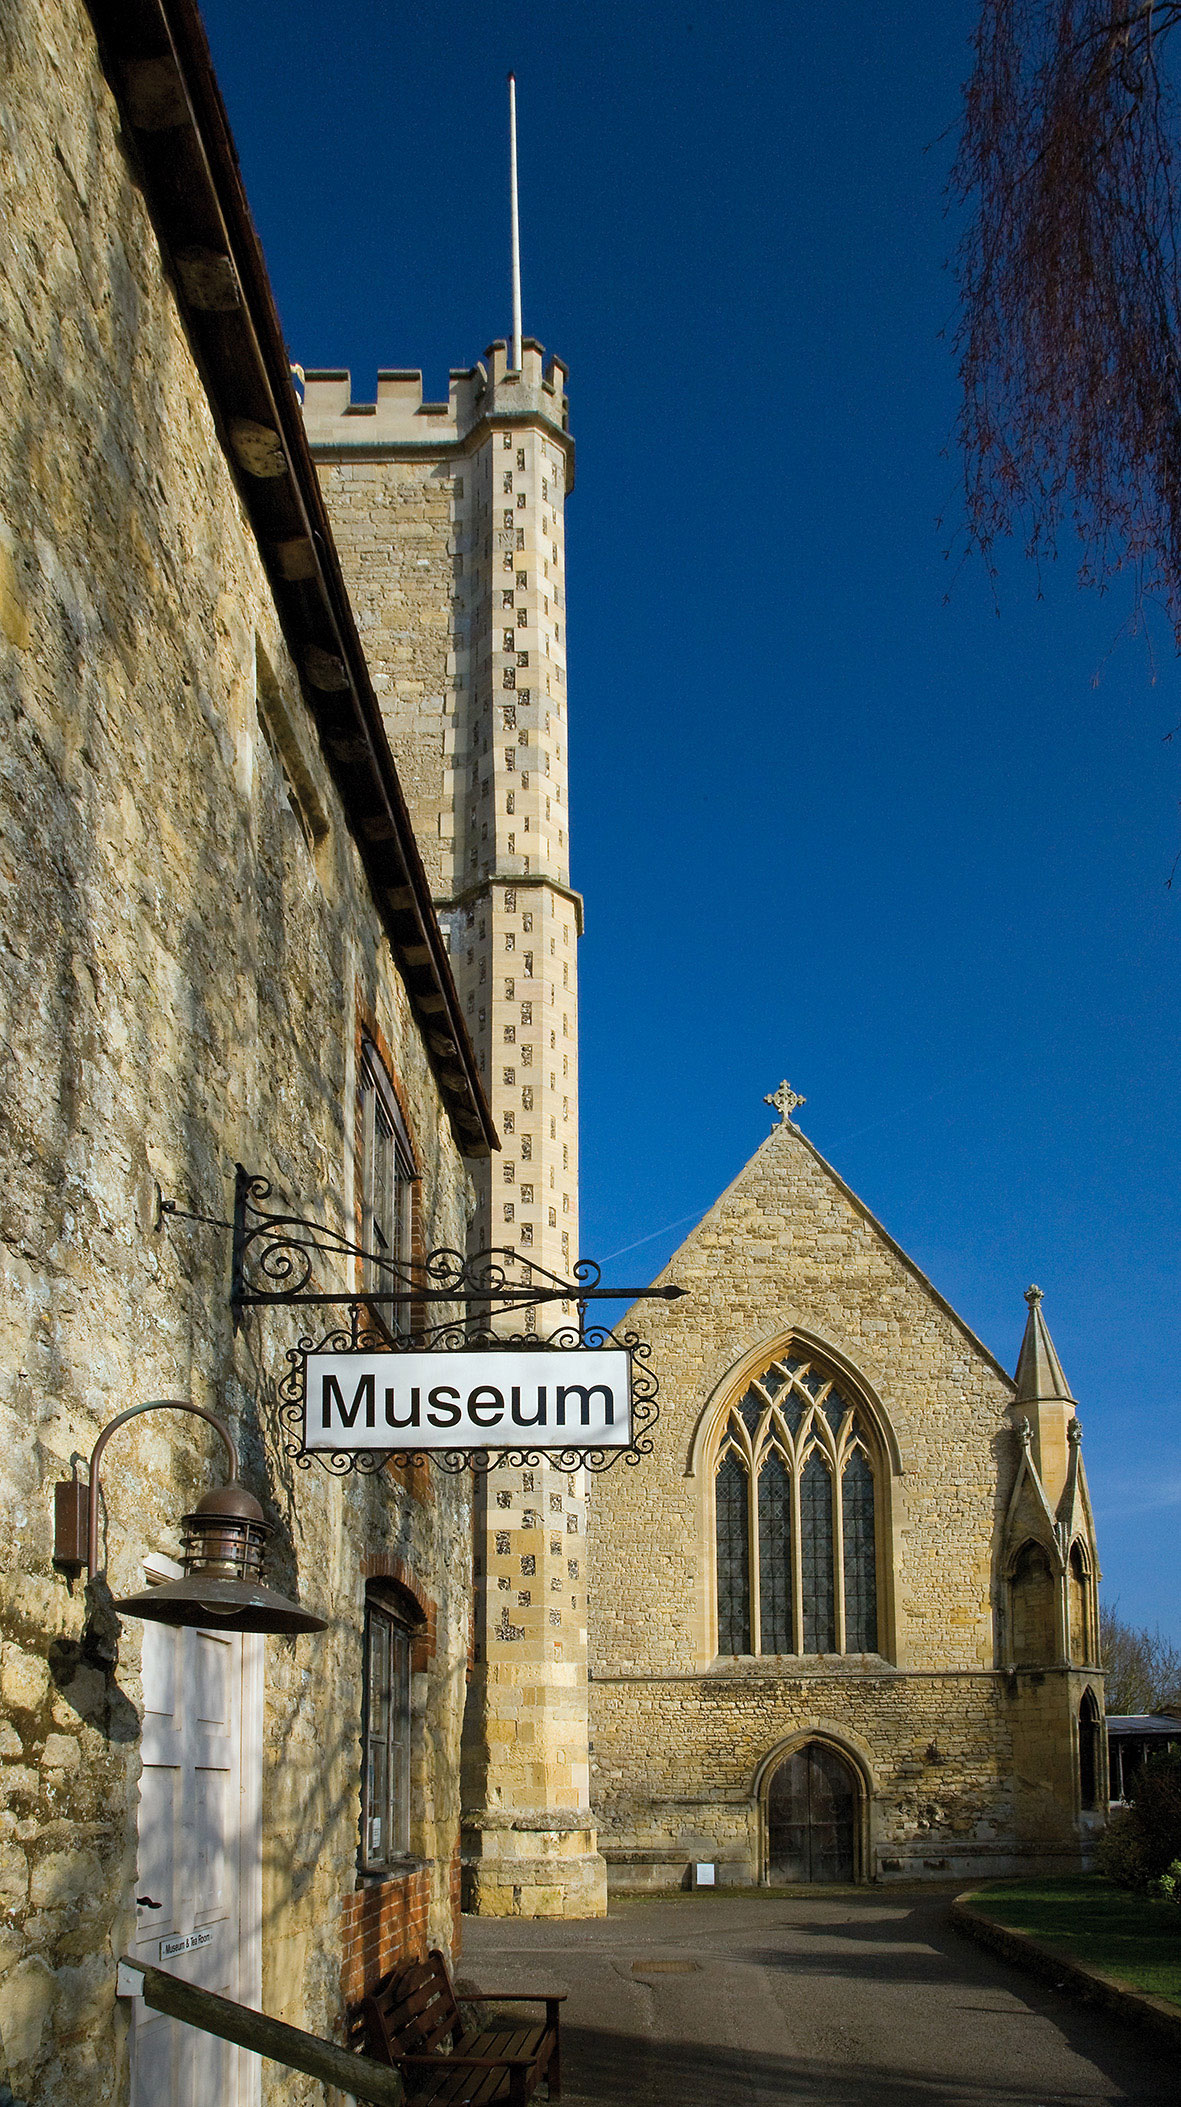 The Museum -